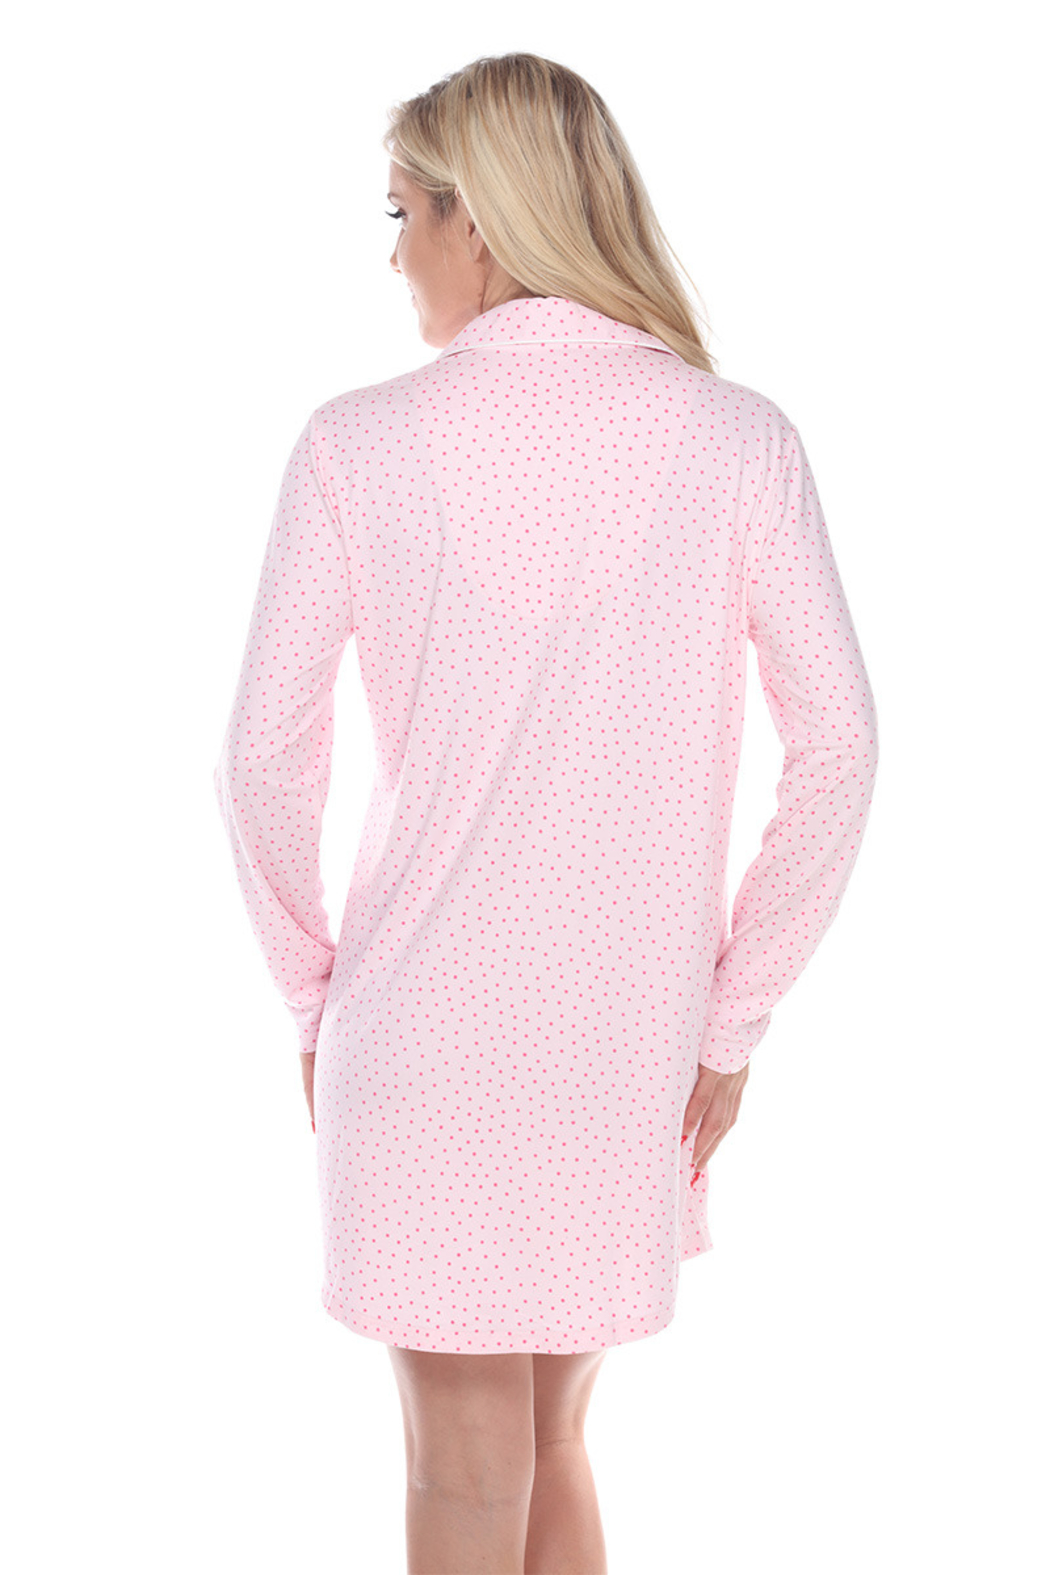 WhiteMark White Mark's Long Sleeve Nightgown - Back Cropped Image